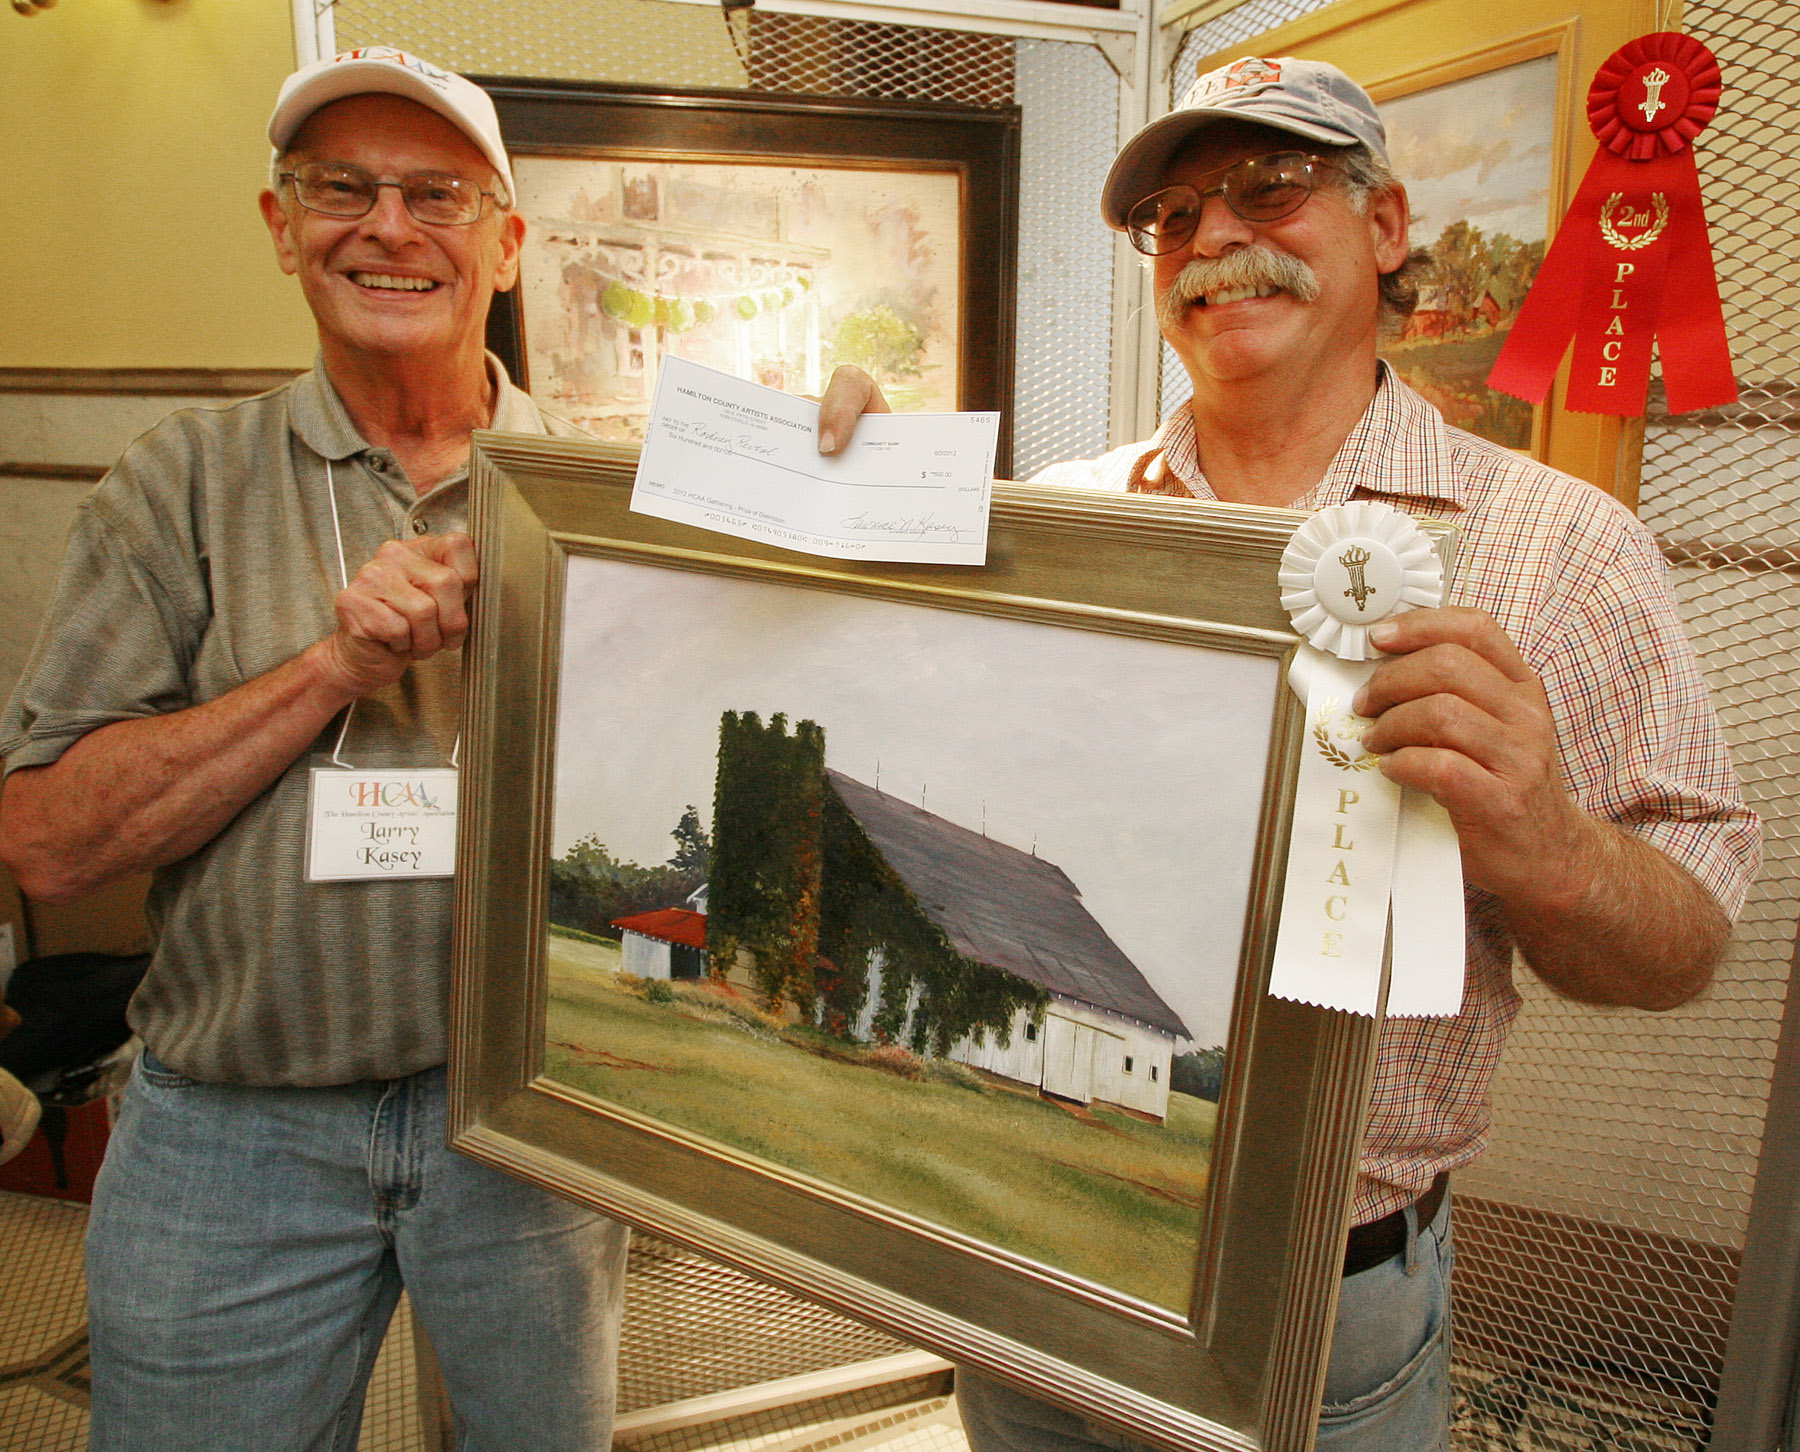 Larry Kasey, HCAA treasurer and Gathering chairman, left, recognizes Rodney Reveal as winner of the $600 Prize of Distinction during the HCAA's fourth annual Gathering of plein air painters. (photo submitted)